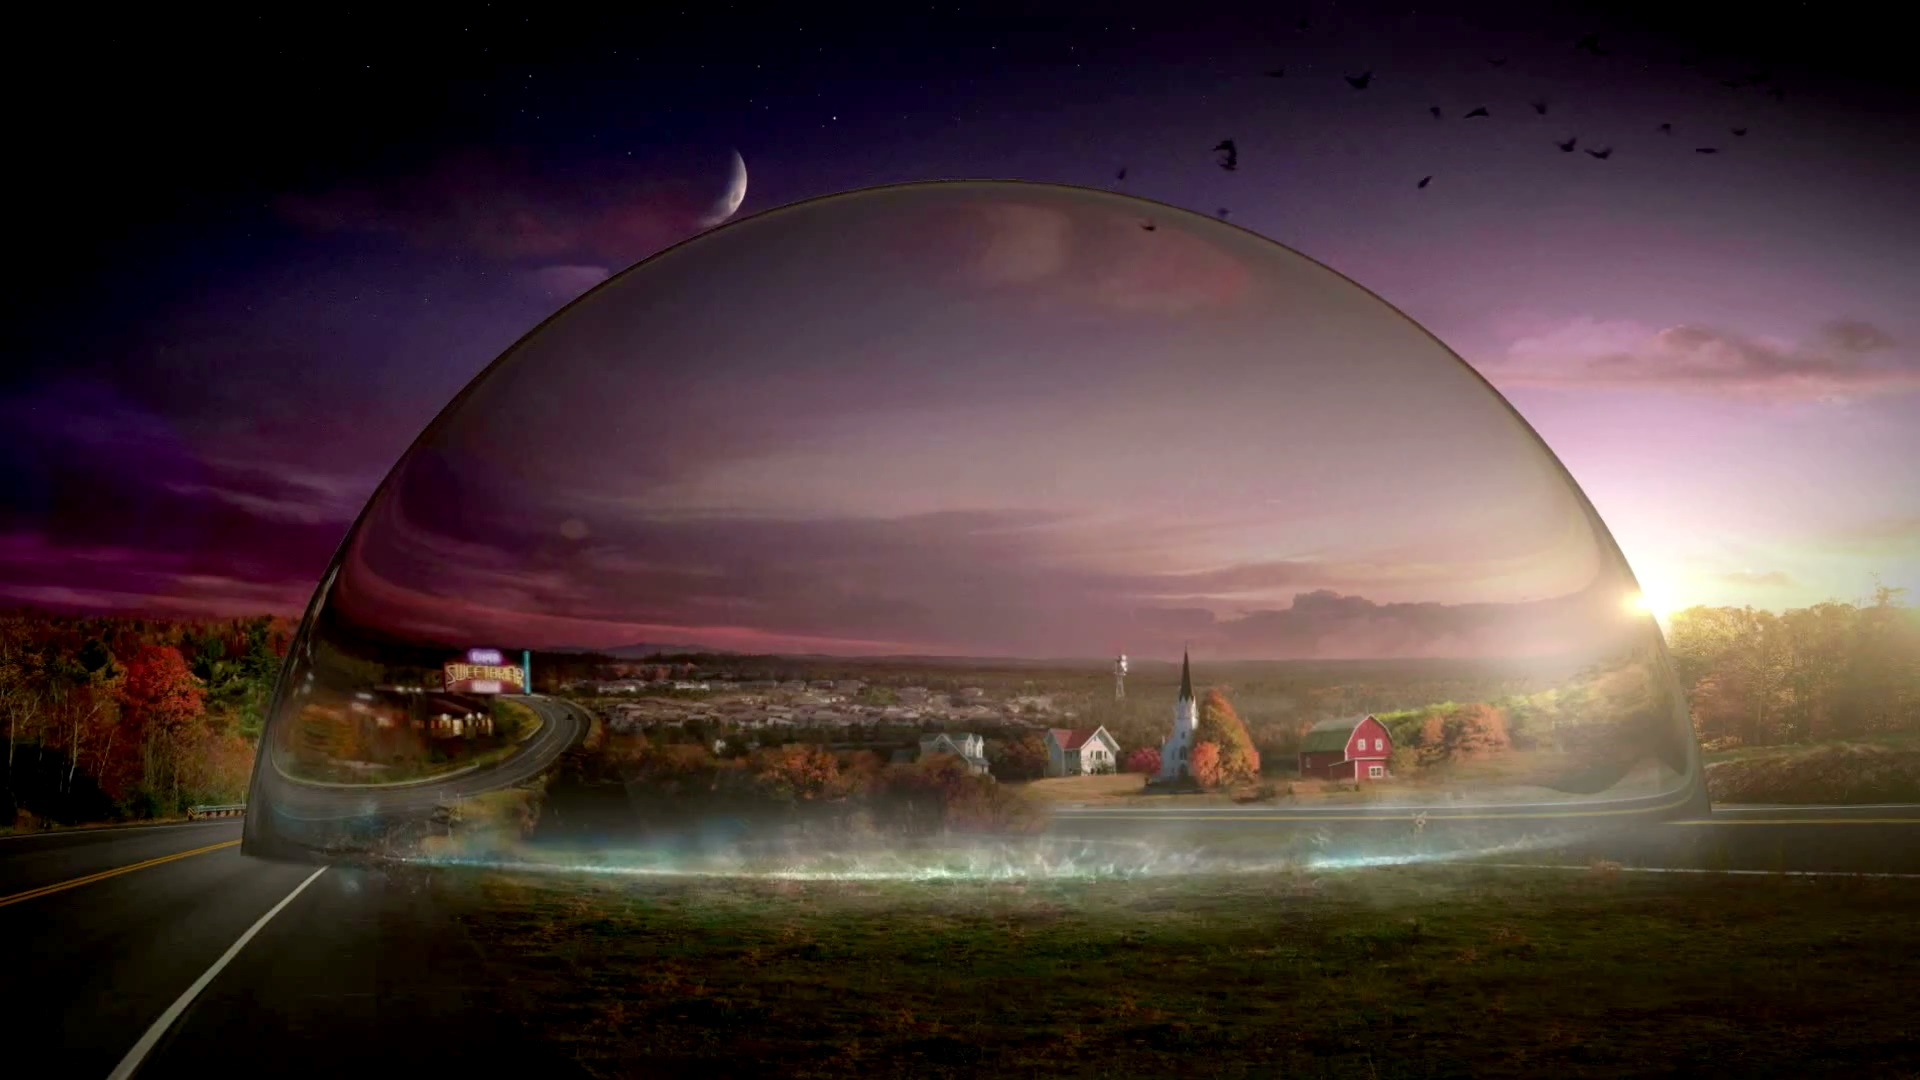 Under the Dome wallpaper 1